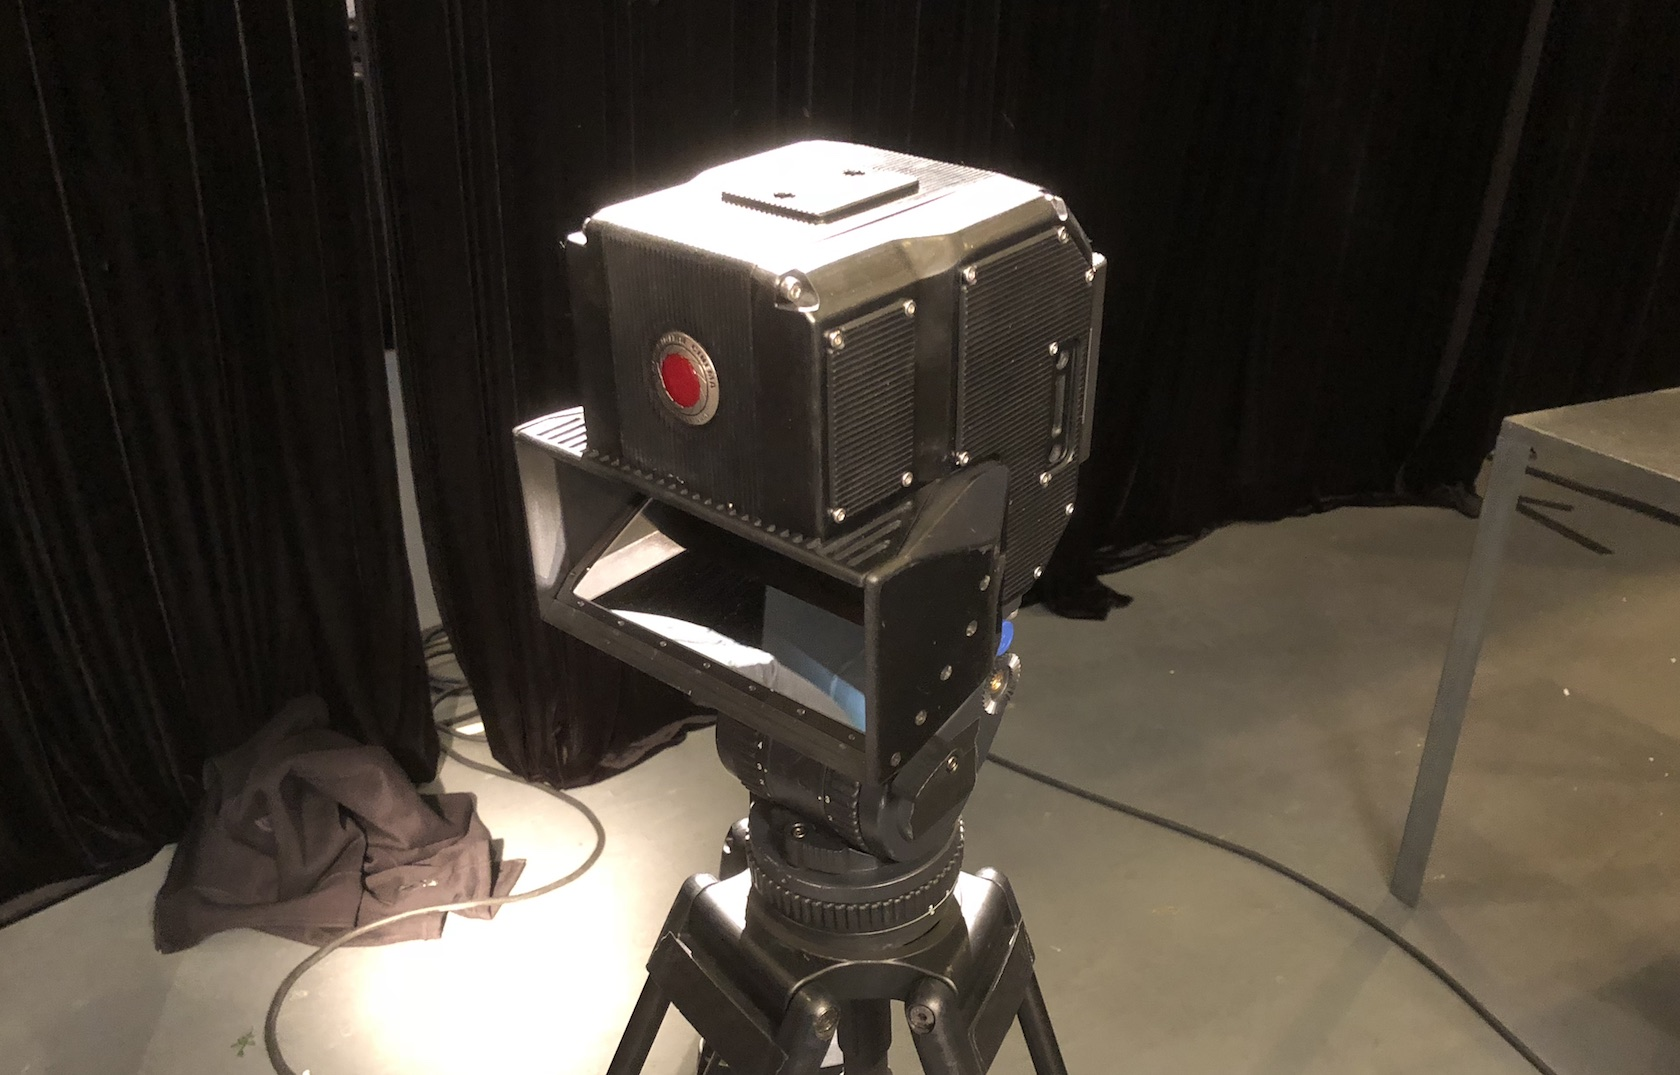 This RED 8K 4V camera uses Hydrogen One as its 3D viewfinder